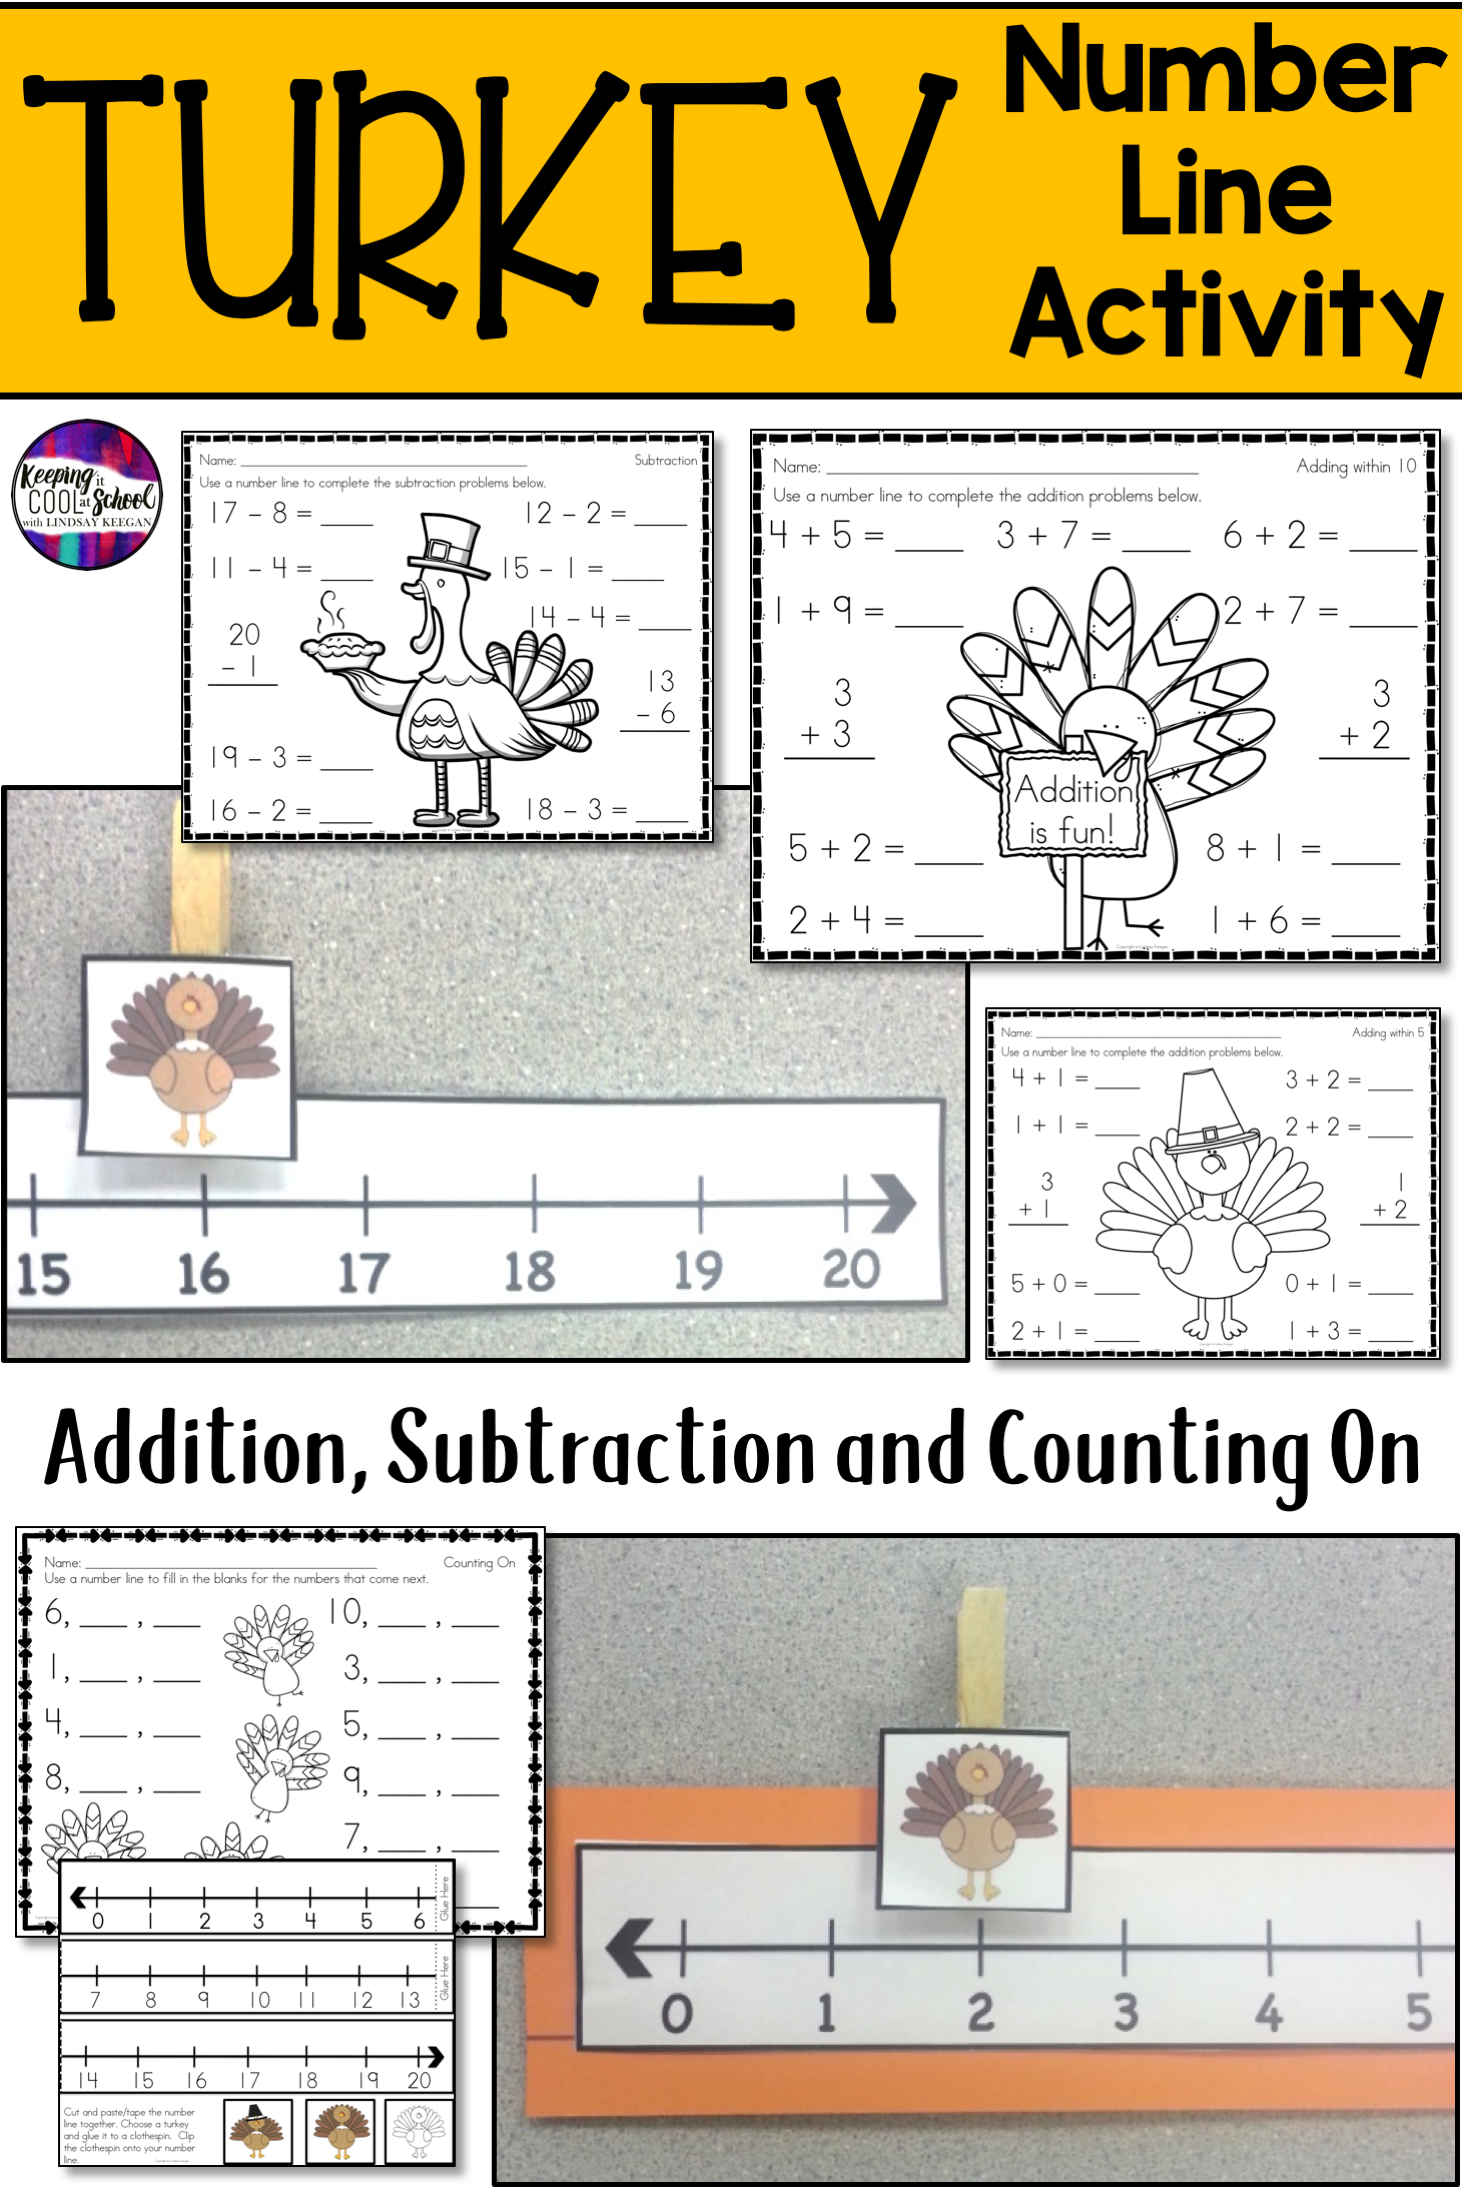 Turkey Math Activity For Number Lines